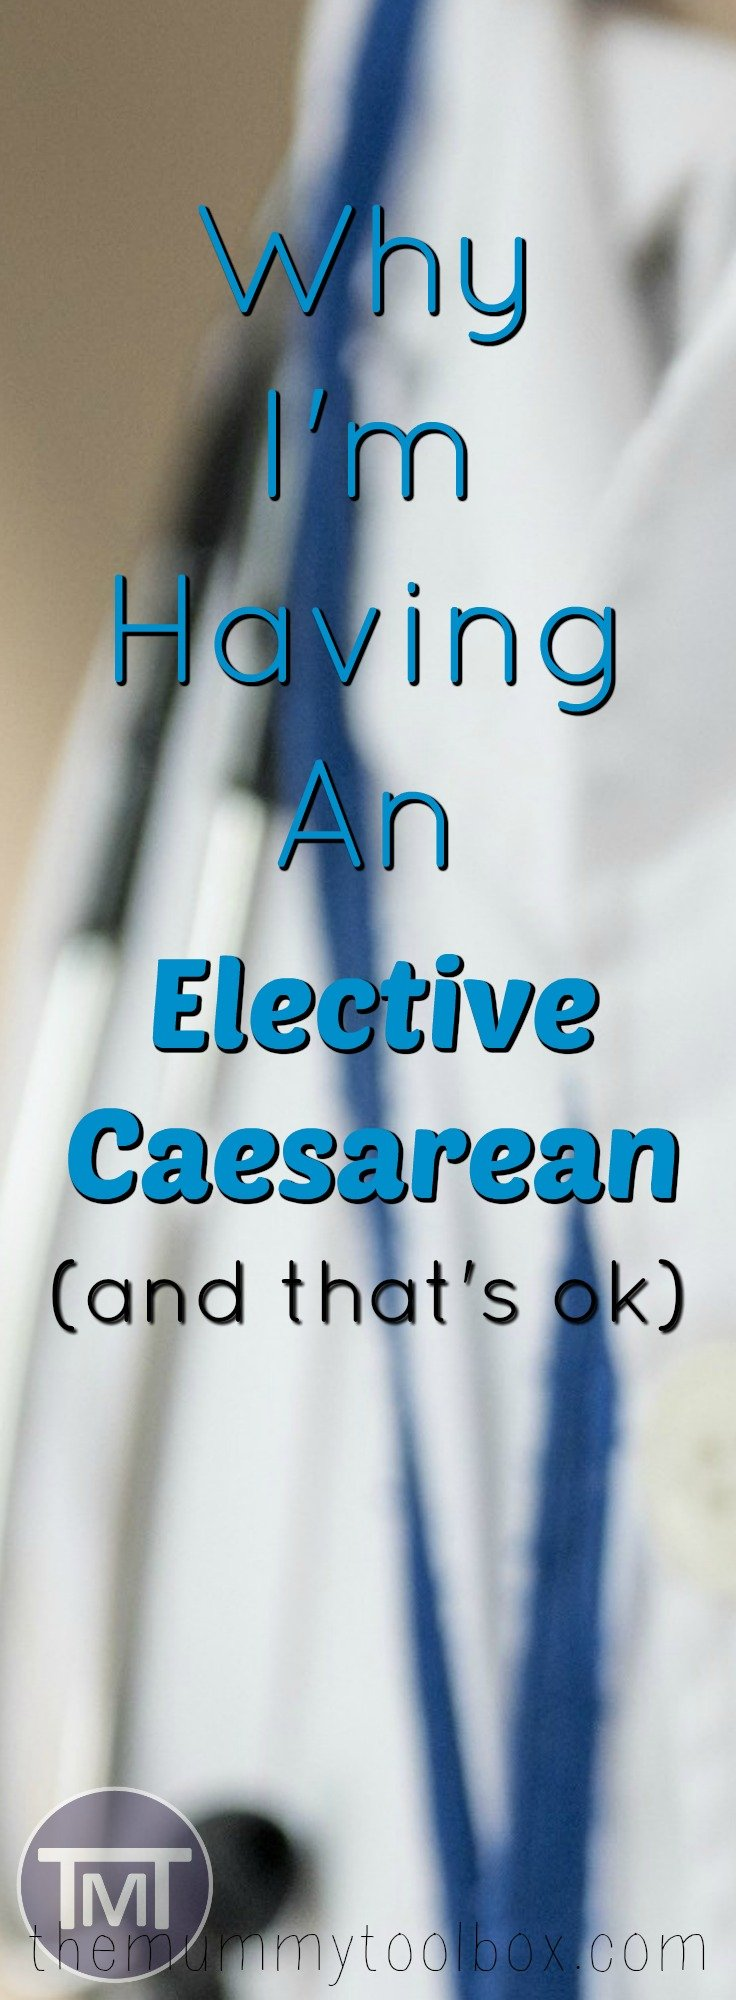 Yes I am opting for an elective caesarean and I that's ok. I explain why it's the best option for me and the growing one!